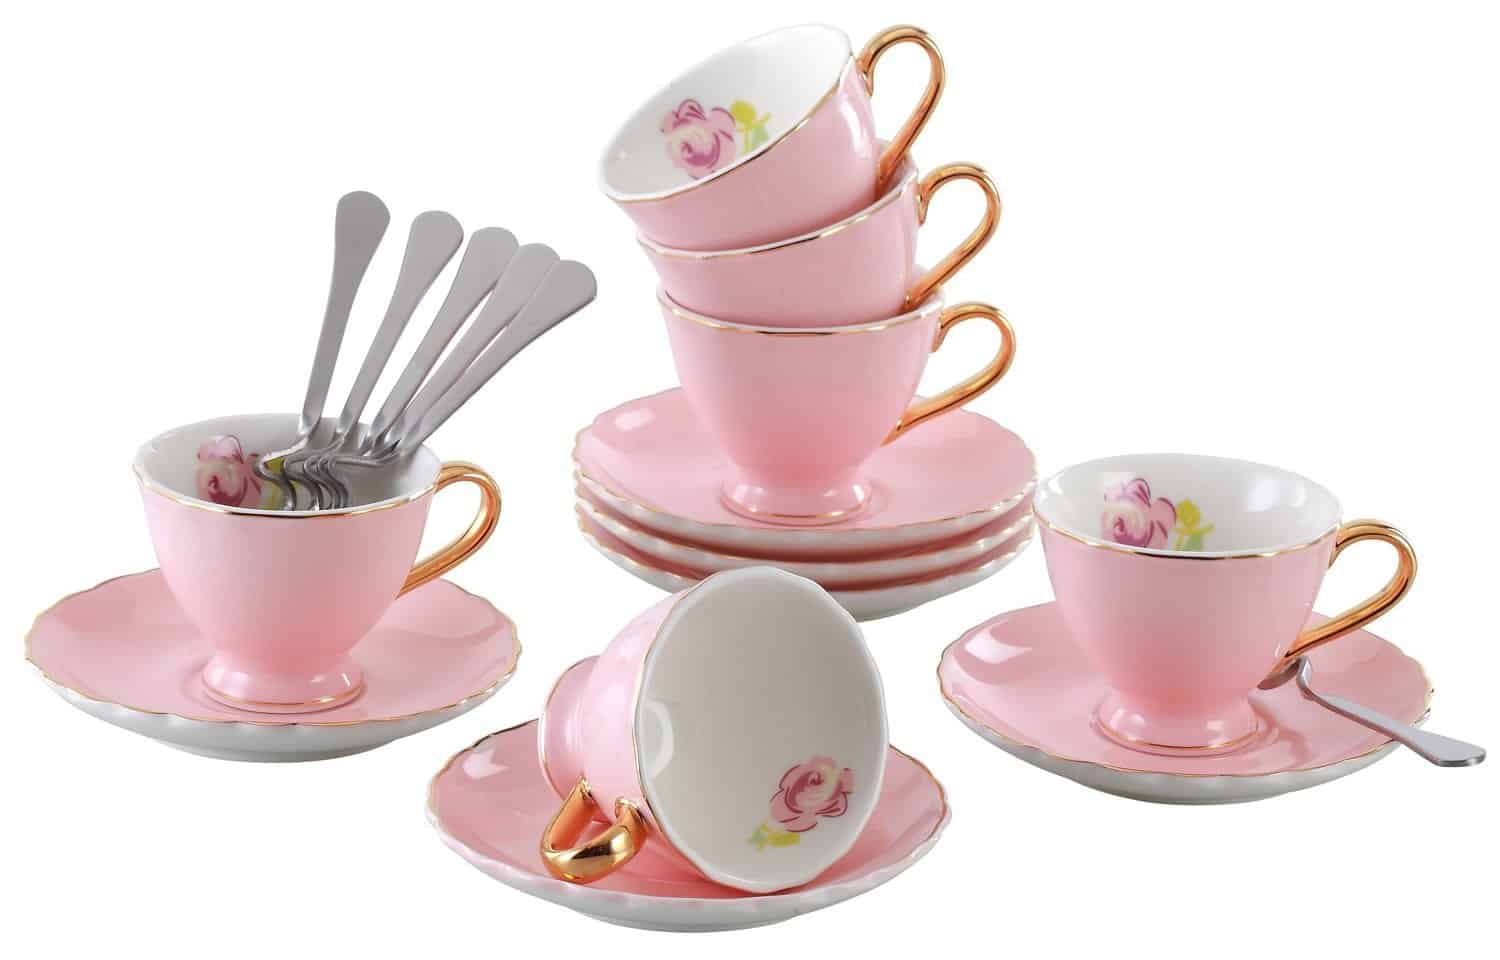 Jusalpha porcelain tea cup set